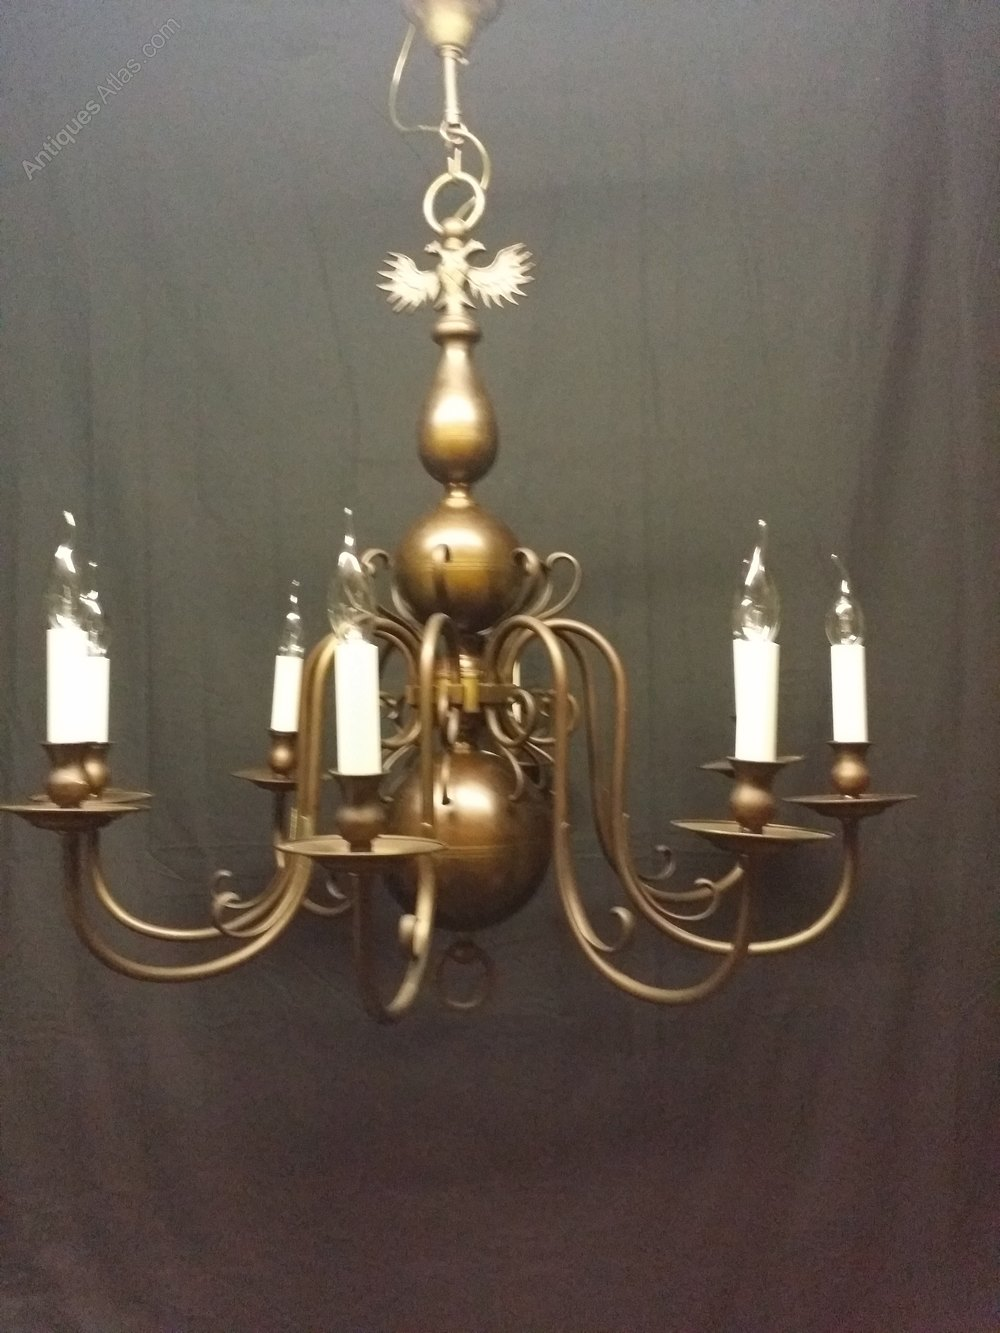 Brass flemish chandeliers flemish chandeliers this is a vwey large eight light brass flemish chandelier this chandelier is in excellent condition and although brass has a good bronze colour and patina arubaitofo Gallery